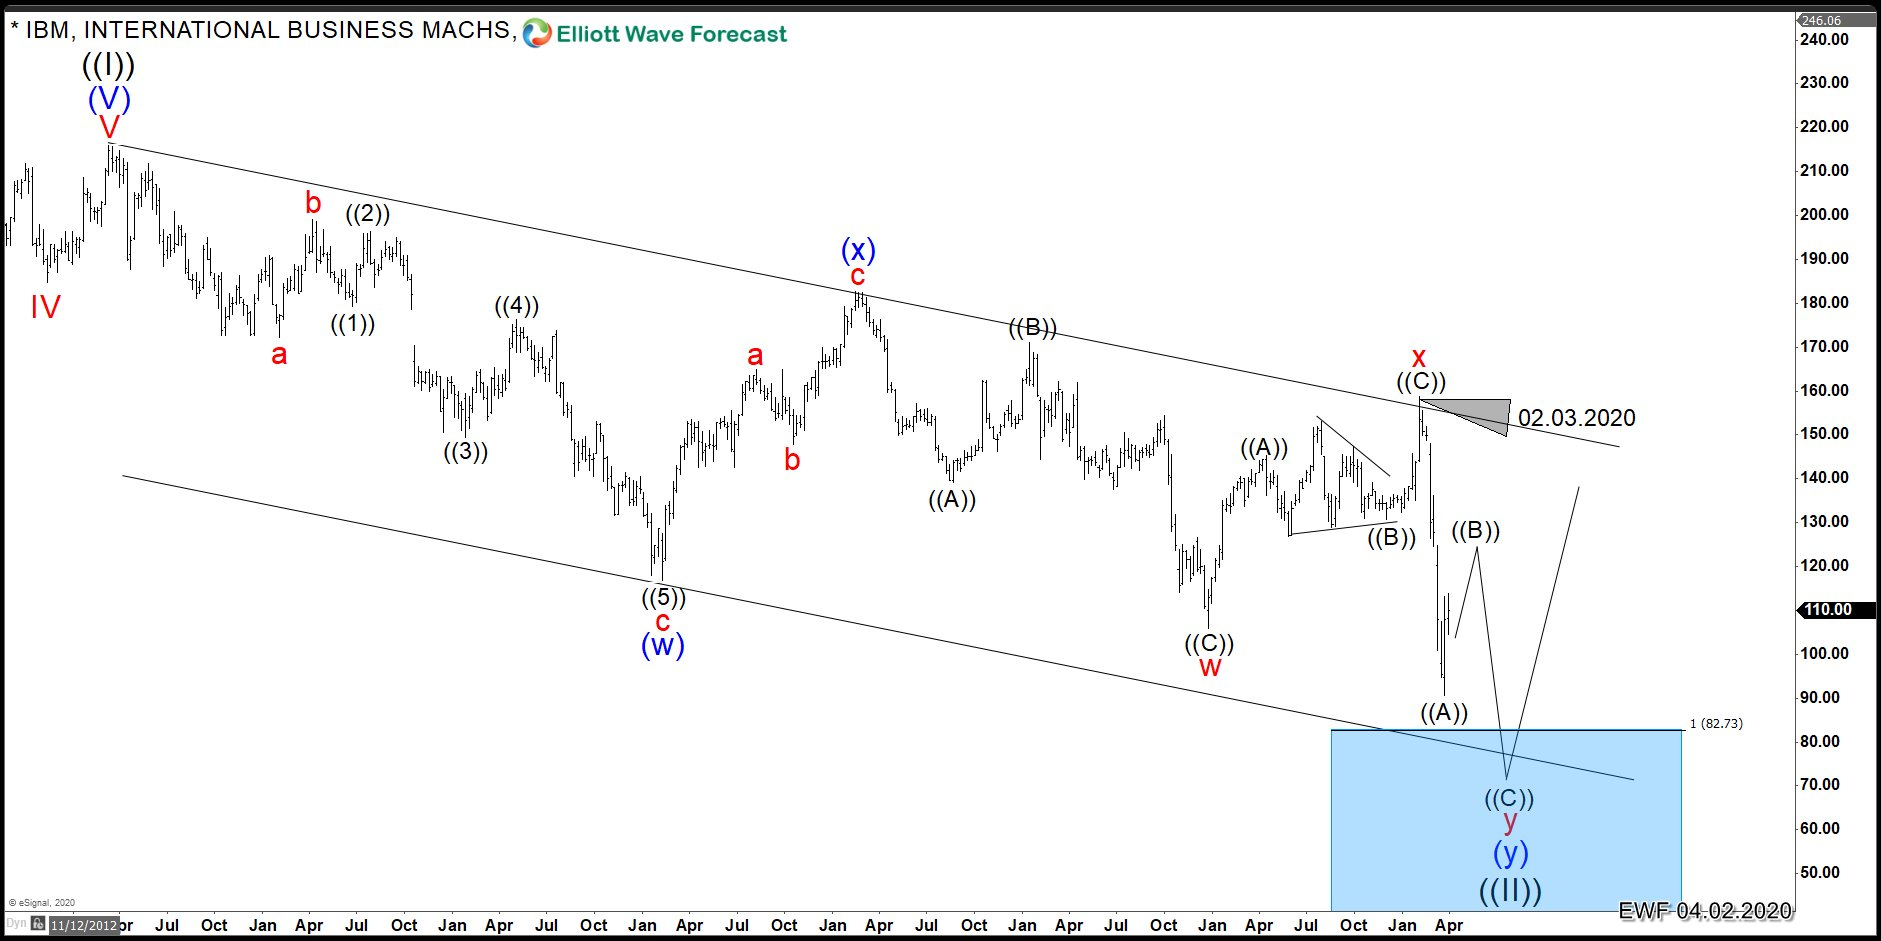 IBM Weekly Elliott Wave Analysis